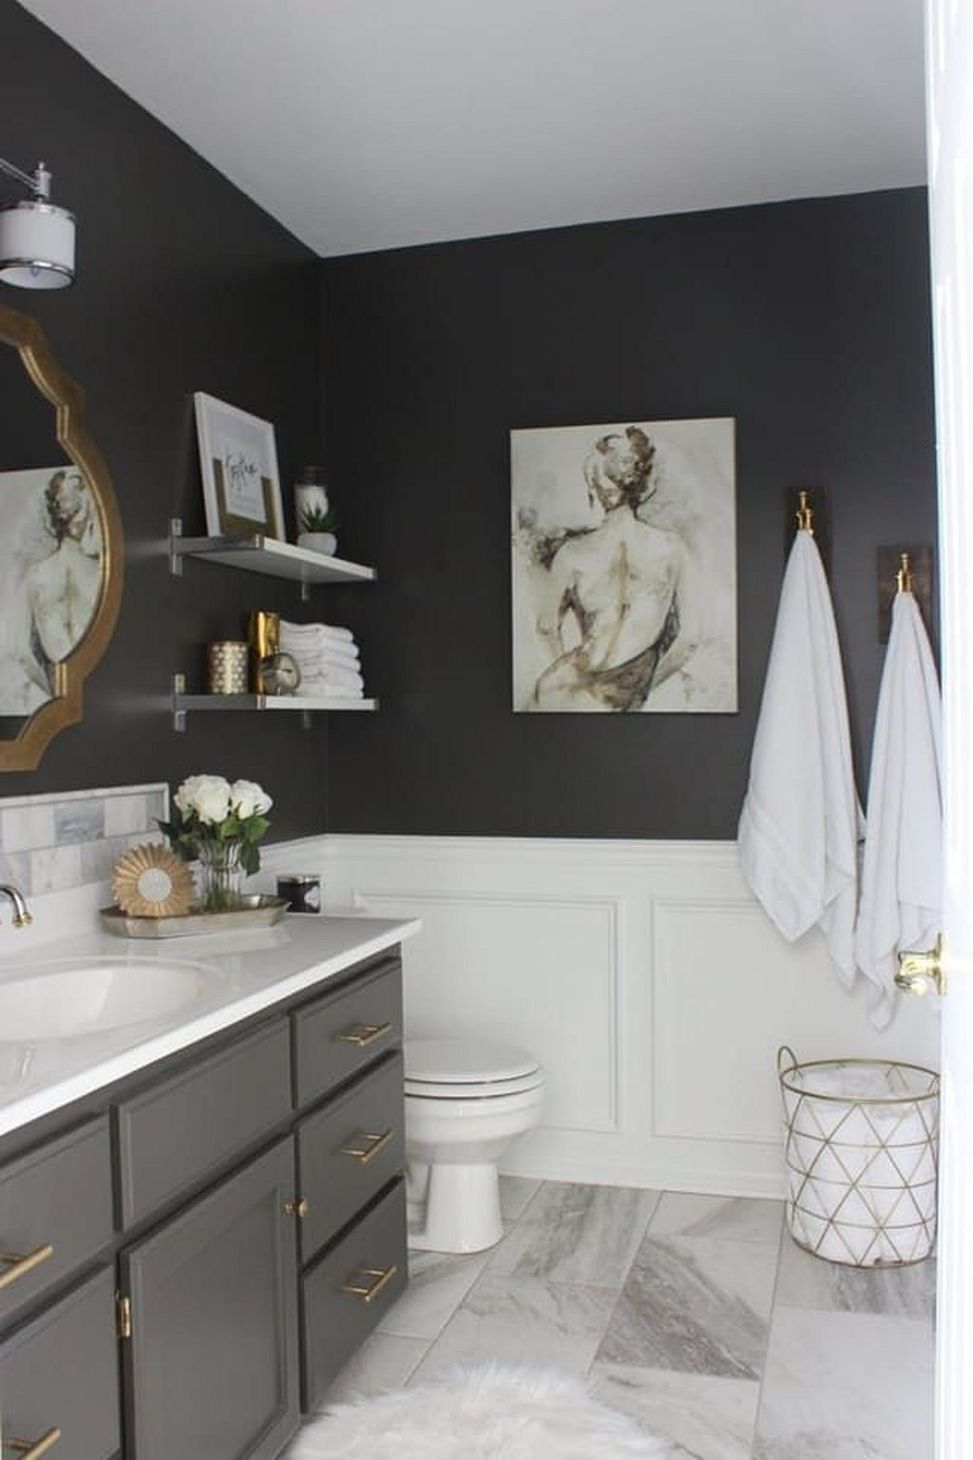 insanely cool small master bathroom remodel ideas on a on cool small bathroom design ideas id=96766